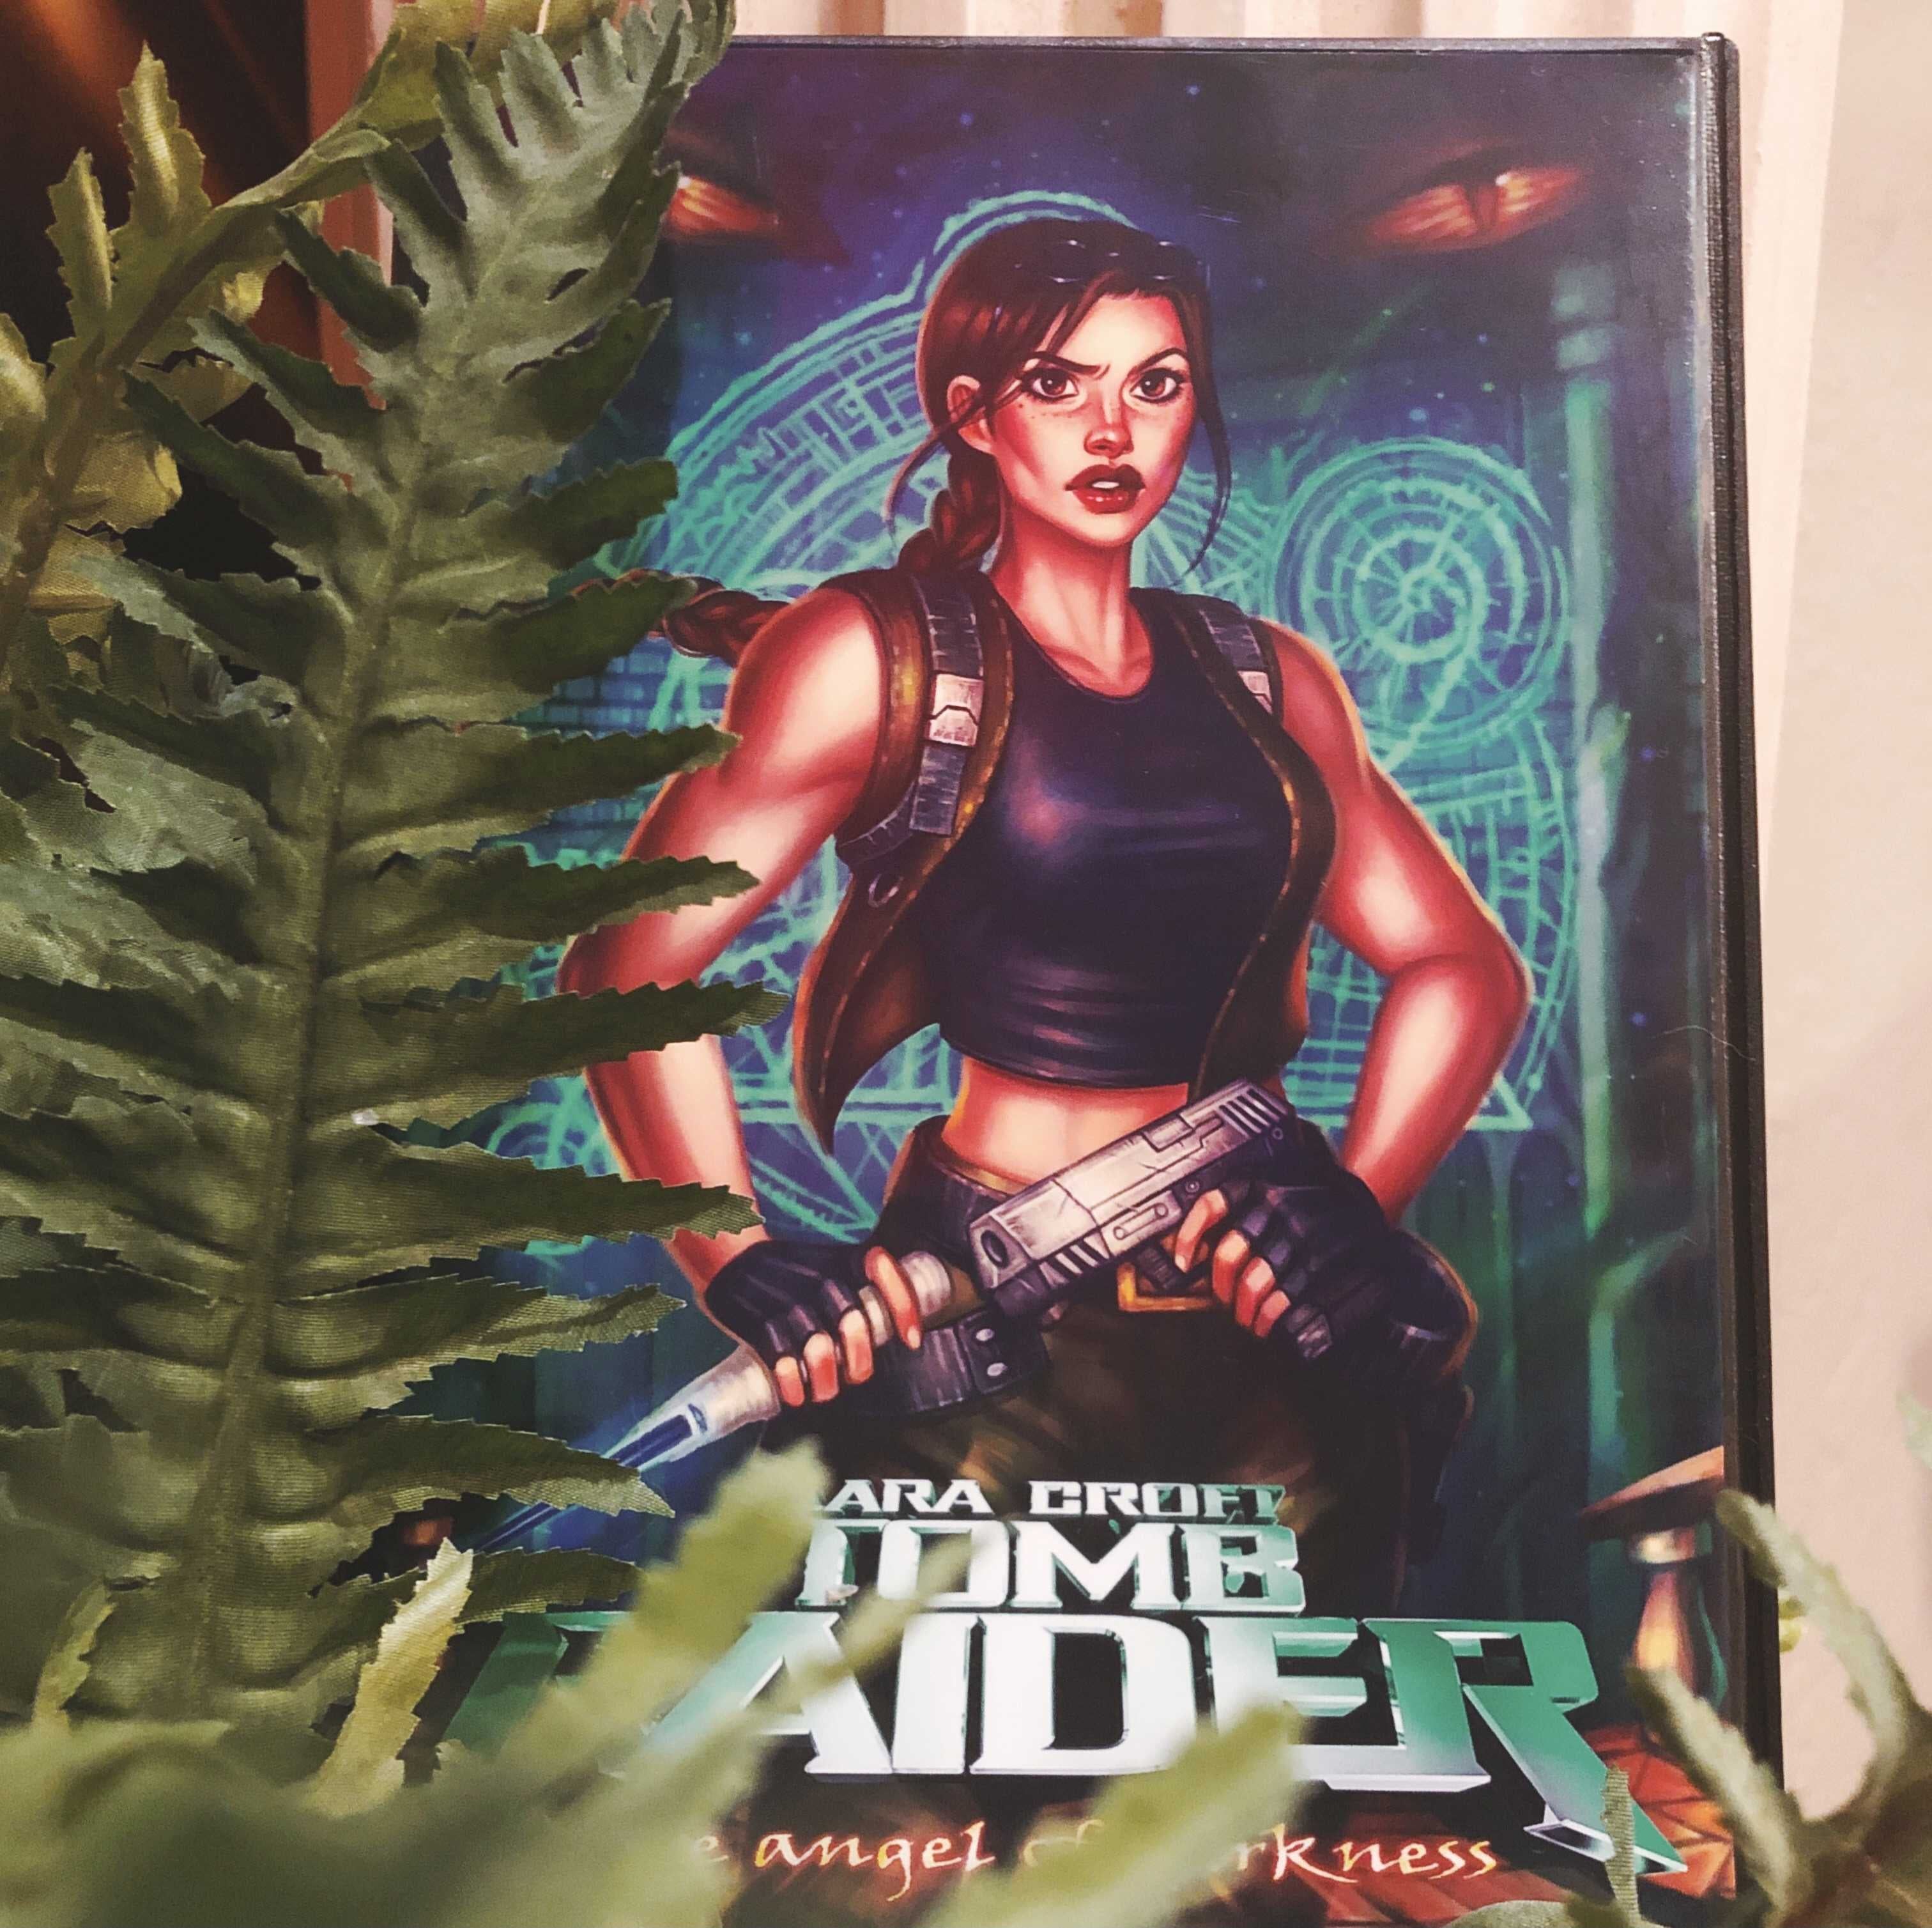 A photo featuring Anastasia Ershova's box art reimagining for Tomb Raider: the Angel of Darkness printed and inserted in a PlayStation 2 case